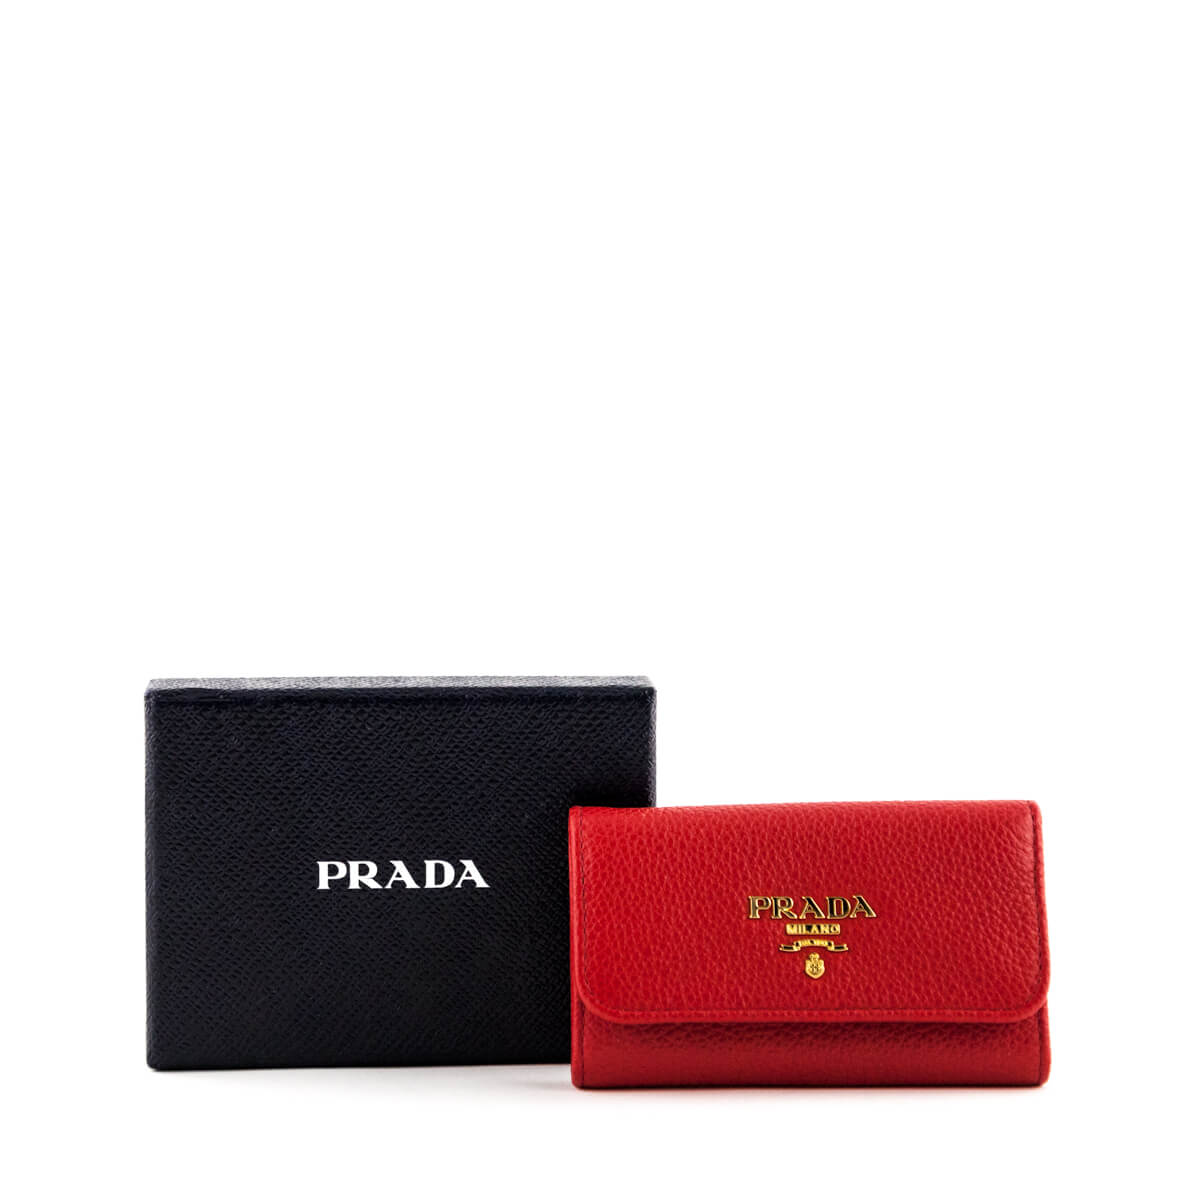 49288b58f254 ... wholesale prada red vitello grain key holder love that bag preowned  authentic designer handbags 99ac2 c5e5c